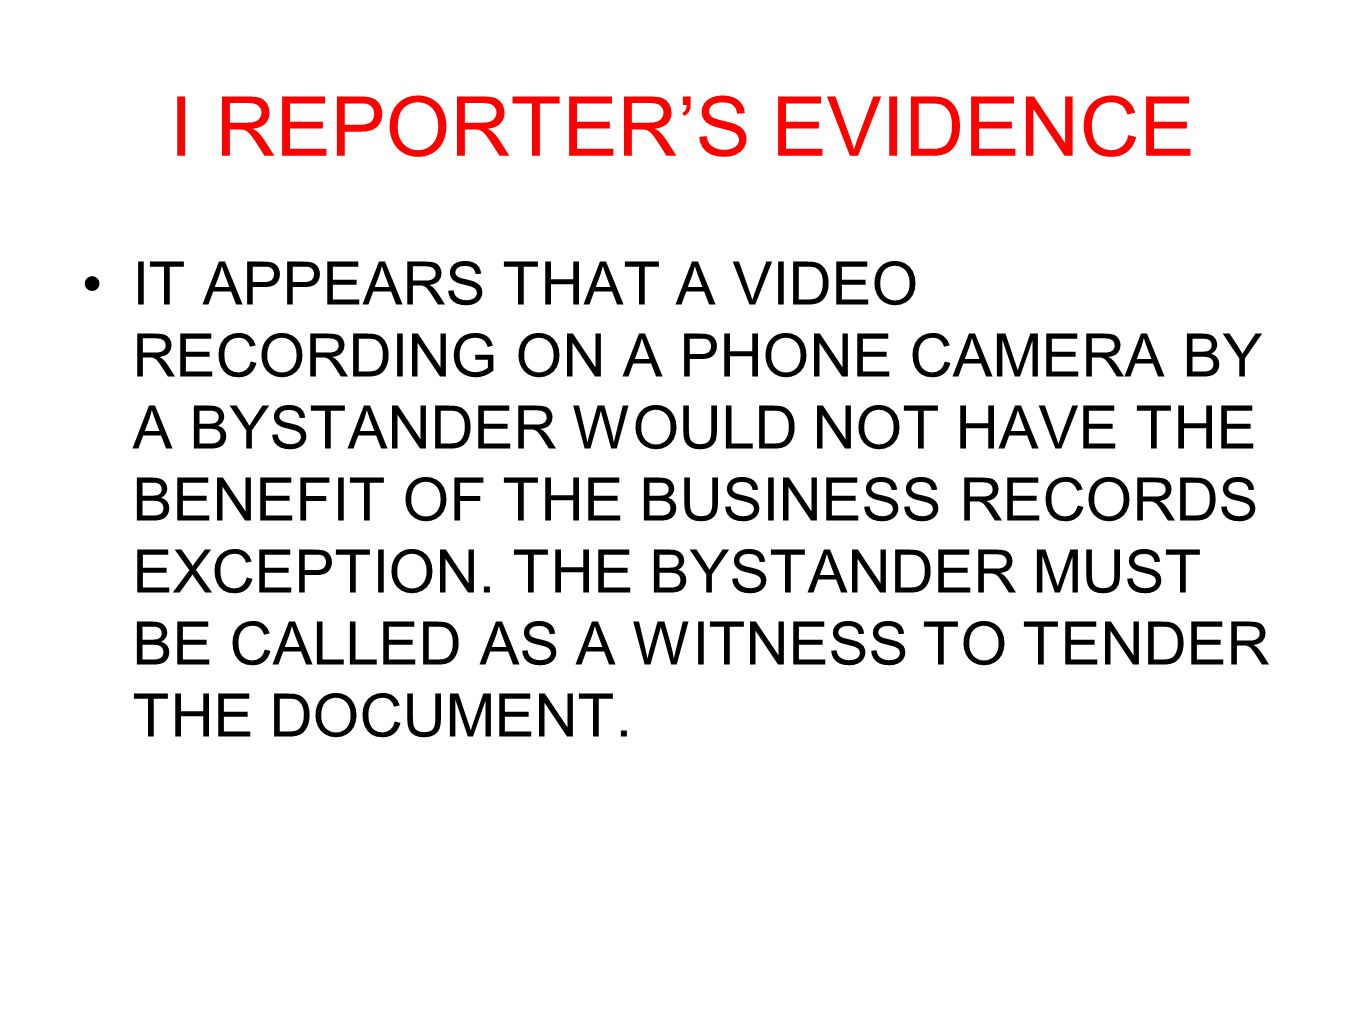 I REPORTER'S EVIDENCE IT APPEARS THAT A VIDEO RECORDING ON A PHONE CAMERA BY A BYSTANDER WOULD NOT HAVE THE BENEFIT OF THE BUSINESS RECORDS EXCEPTION.